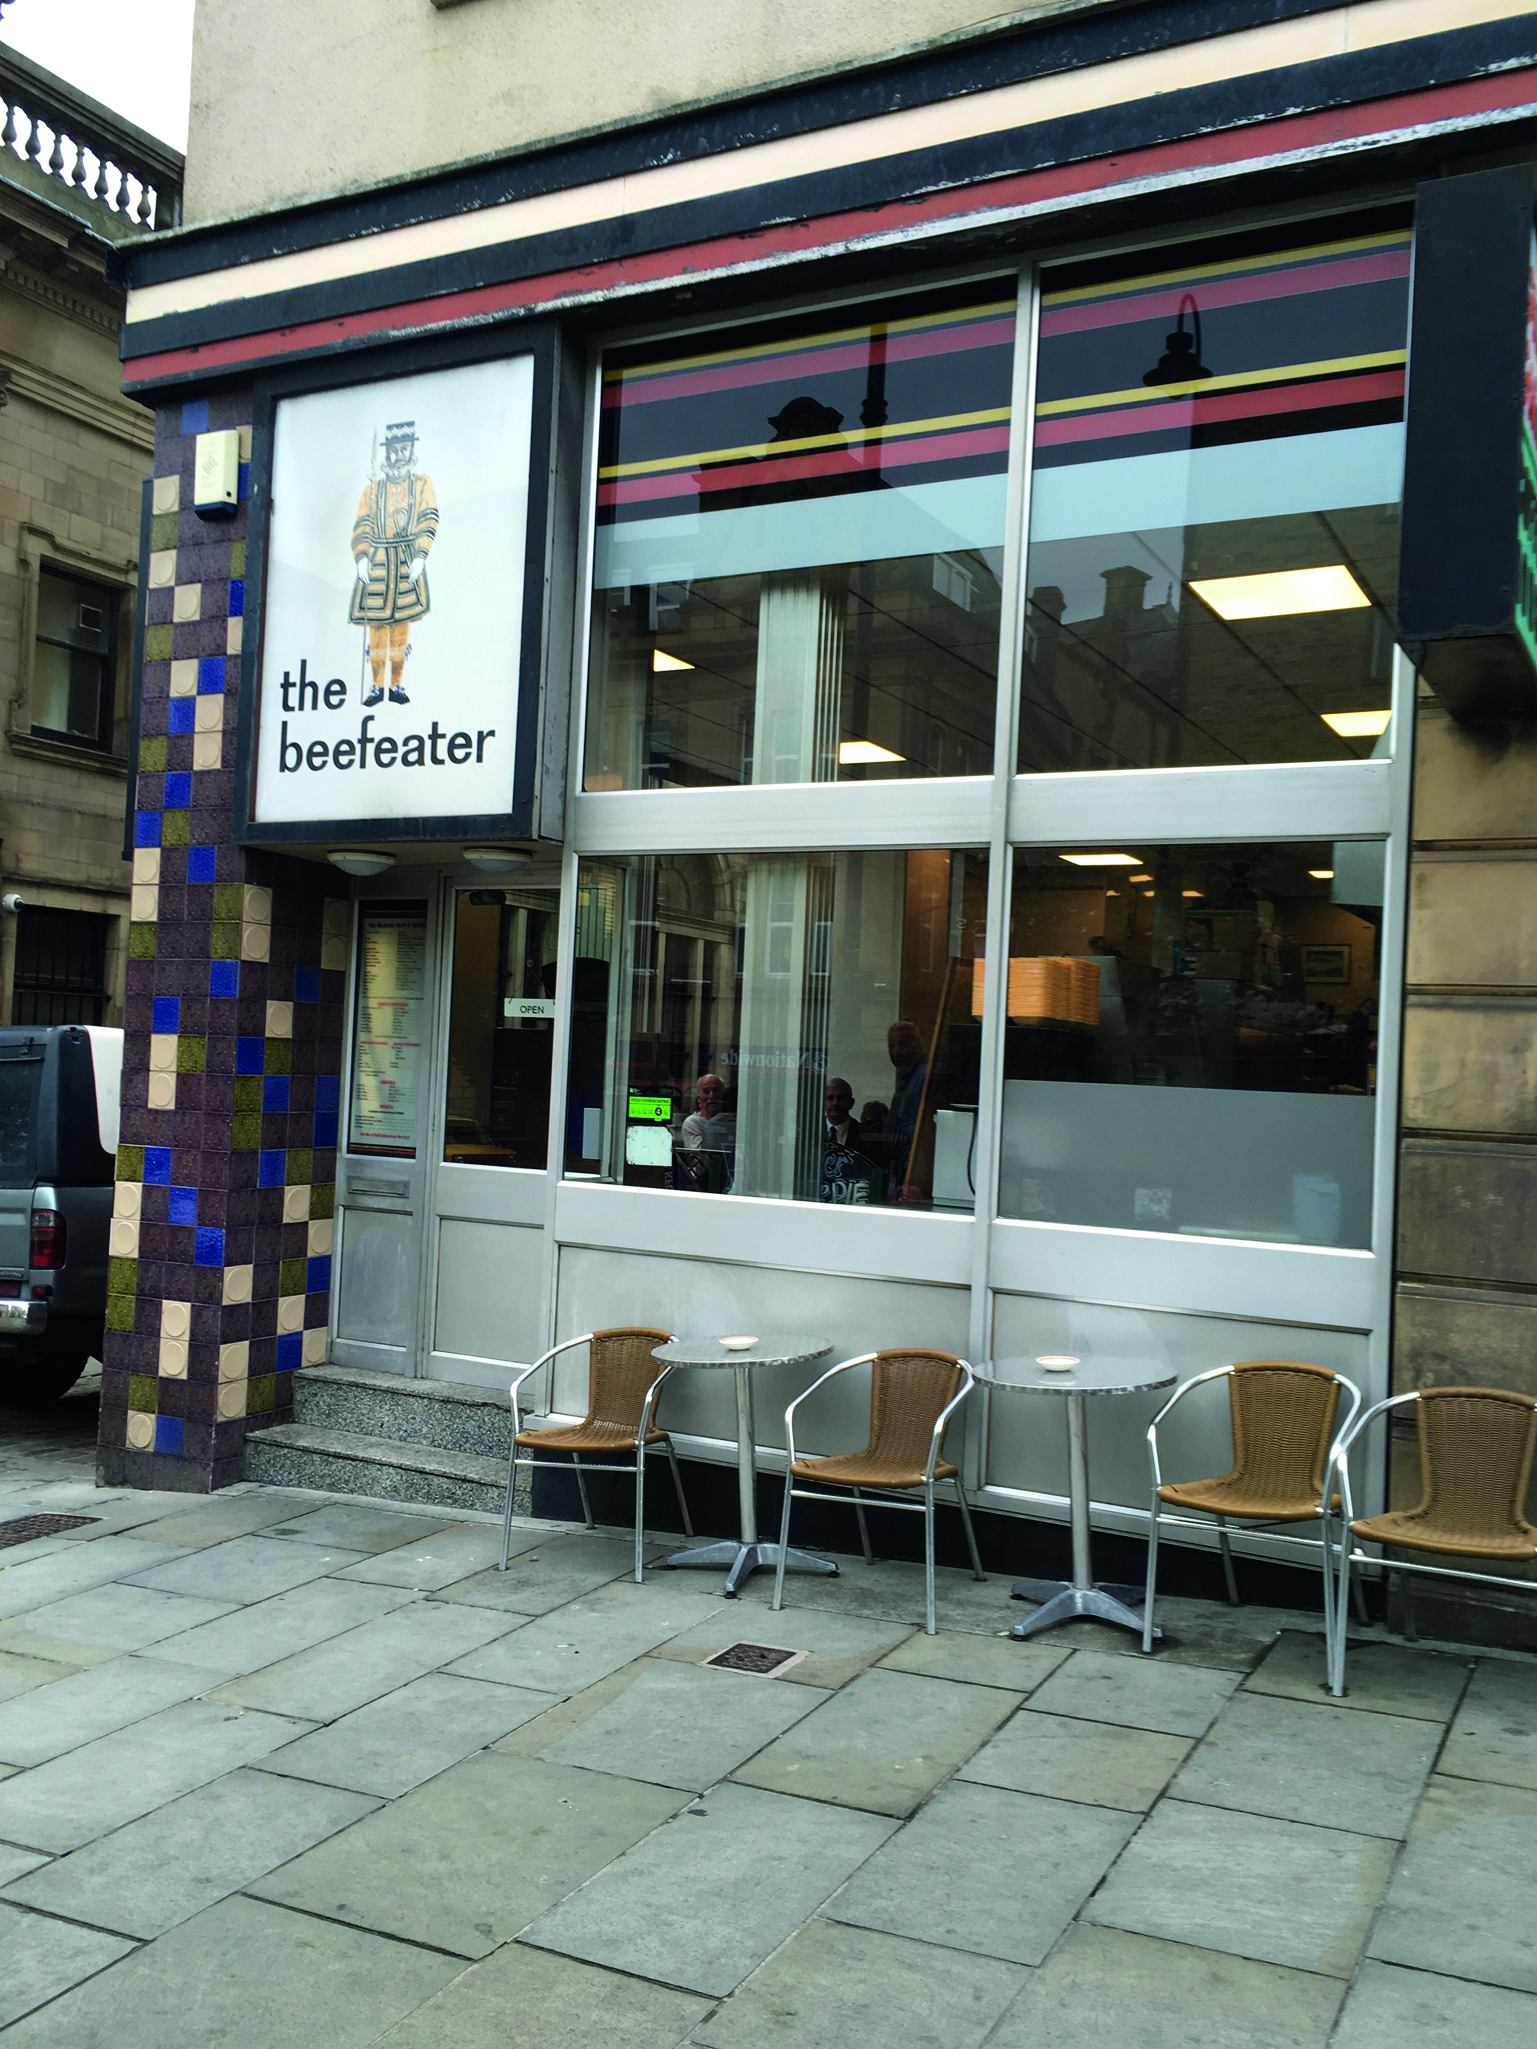 Beefeater cafe